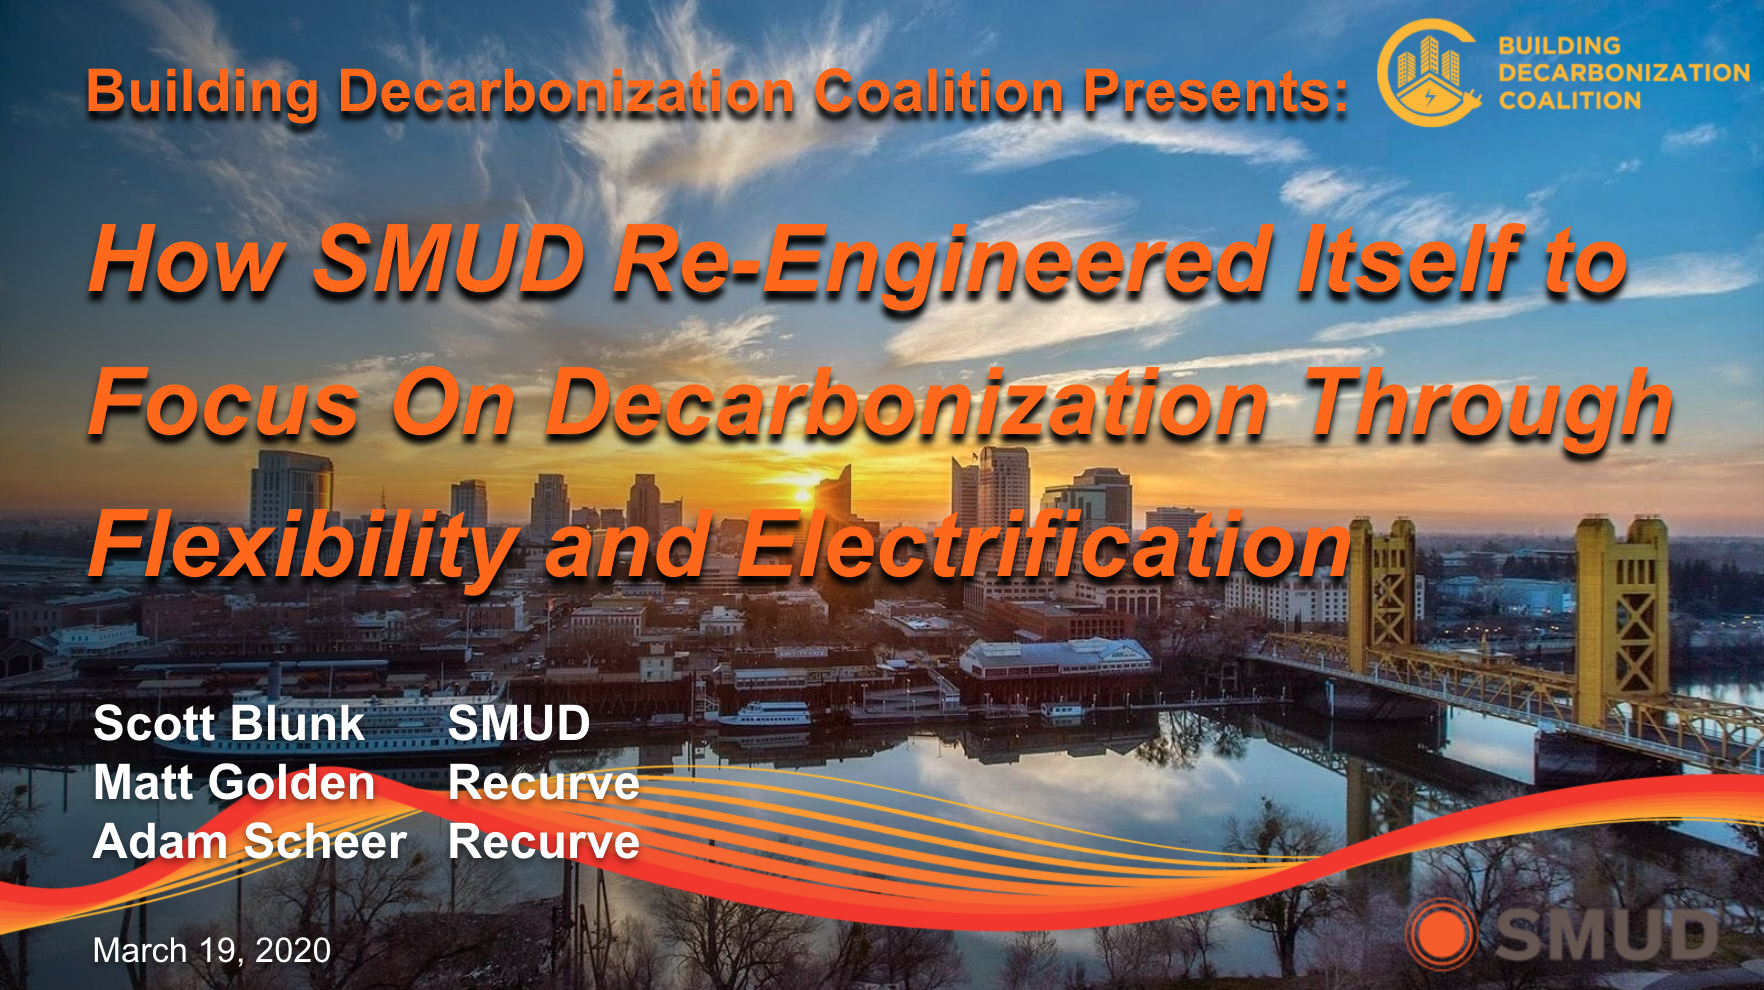 How SMUD Re-Engineered Itself to Focus On Decarbonization Through Flexibility and Electrification